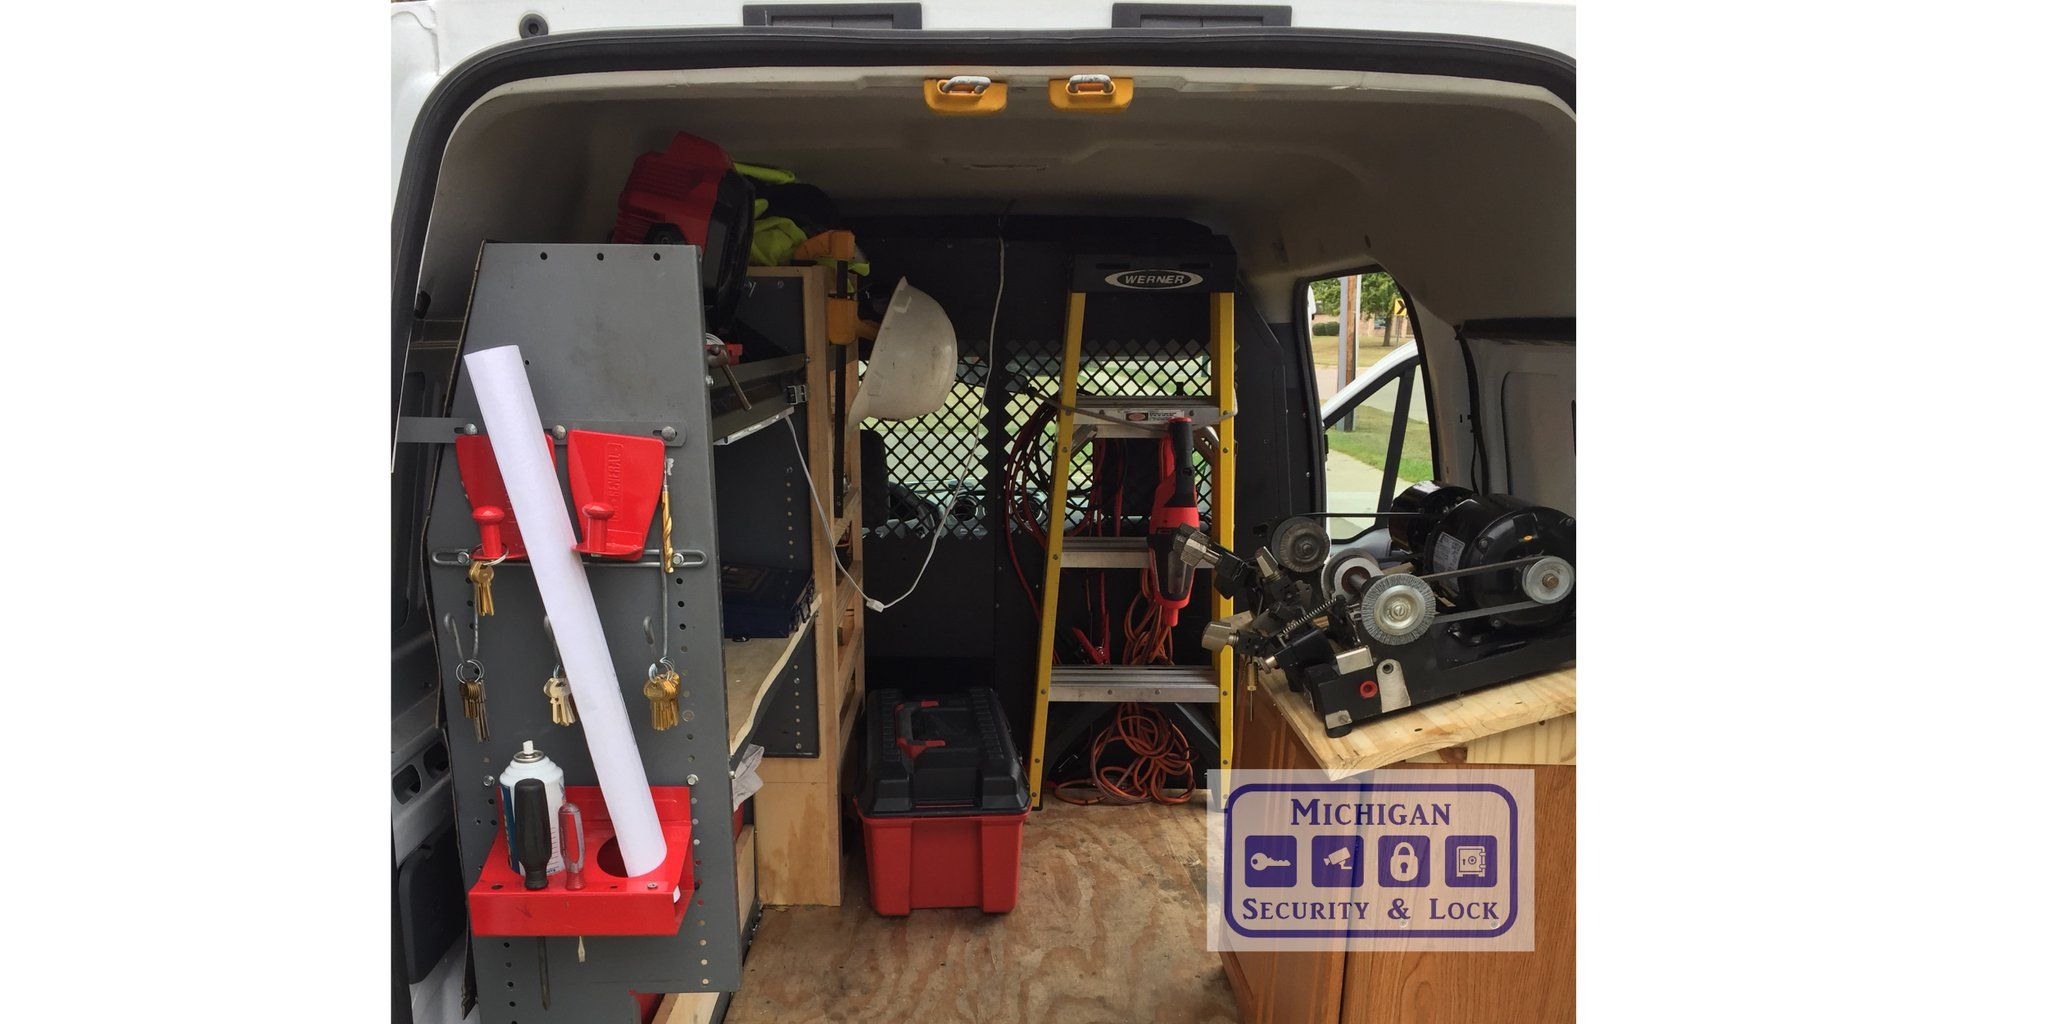 RT https://t.co/nVm5o8LwHQ Fridays are truck tool inventory and cleanup days. Getting ready for the next week to Professionally service our great customers. #Kalamazoo #Locksmith #Profession https://t.co/XT3w1FZ99U